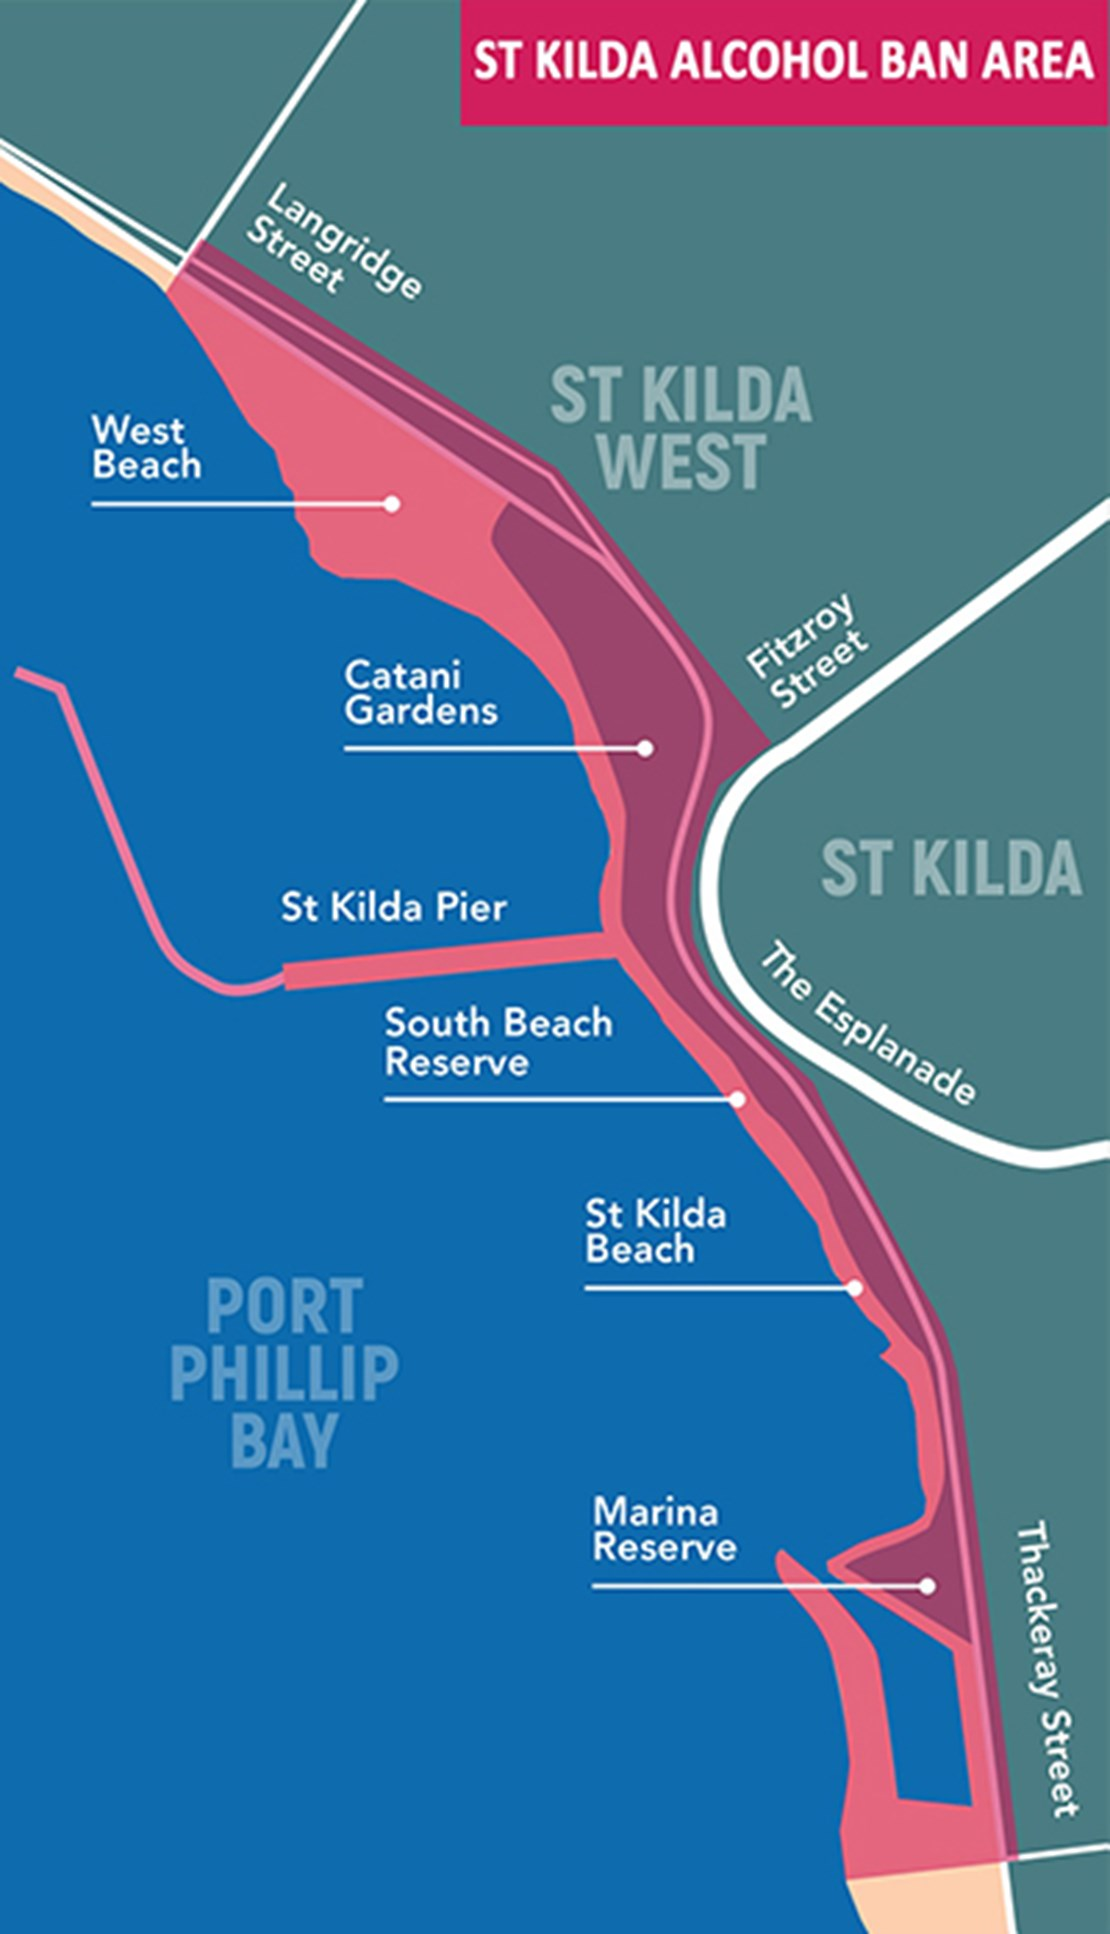 This map is titled St Kilda Foreshore Alcohol Ban Area and shows the St Kilda foreshore area and foreshore reserves extending from Langridge Street to Thackeray Street.